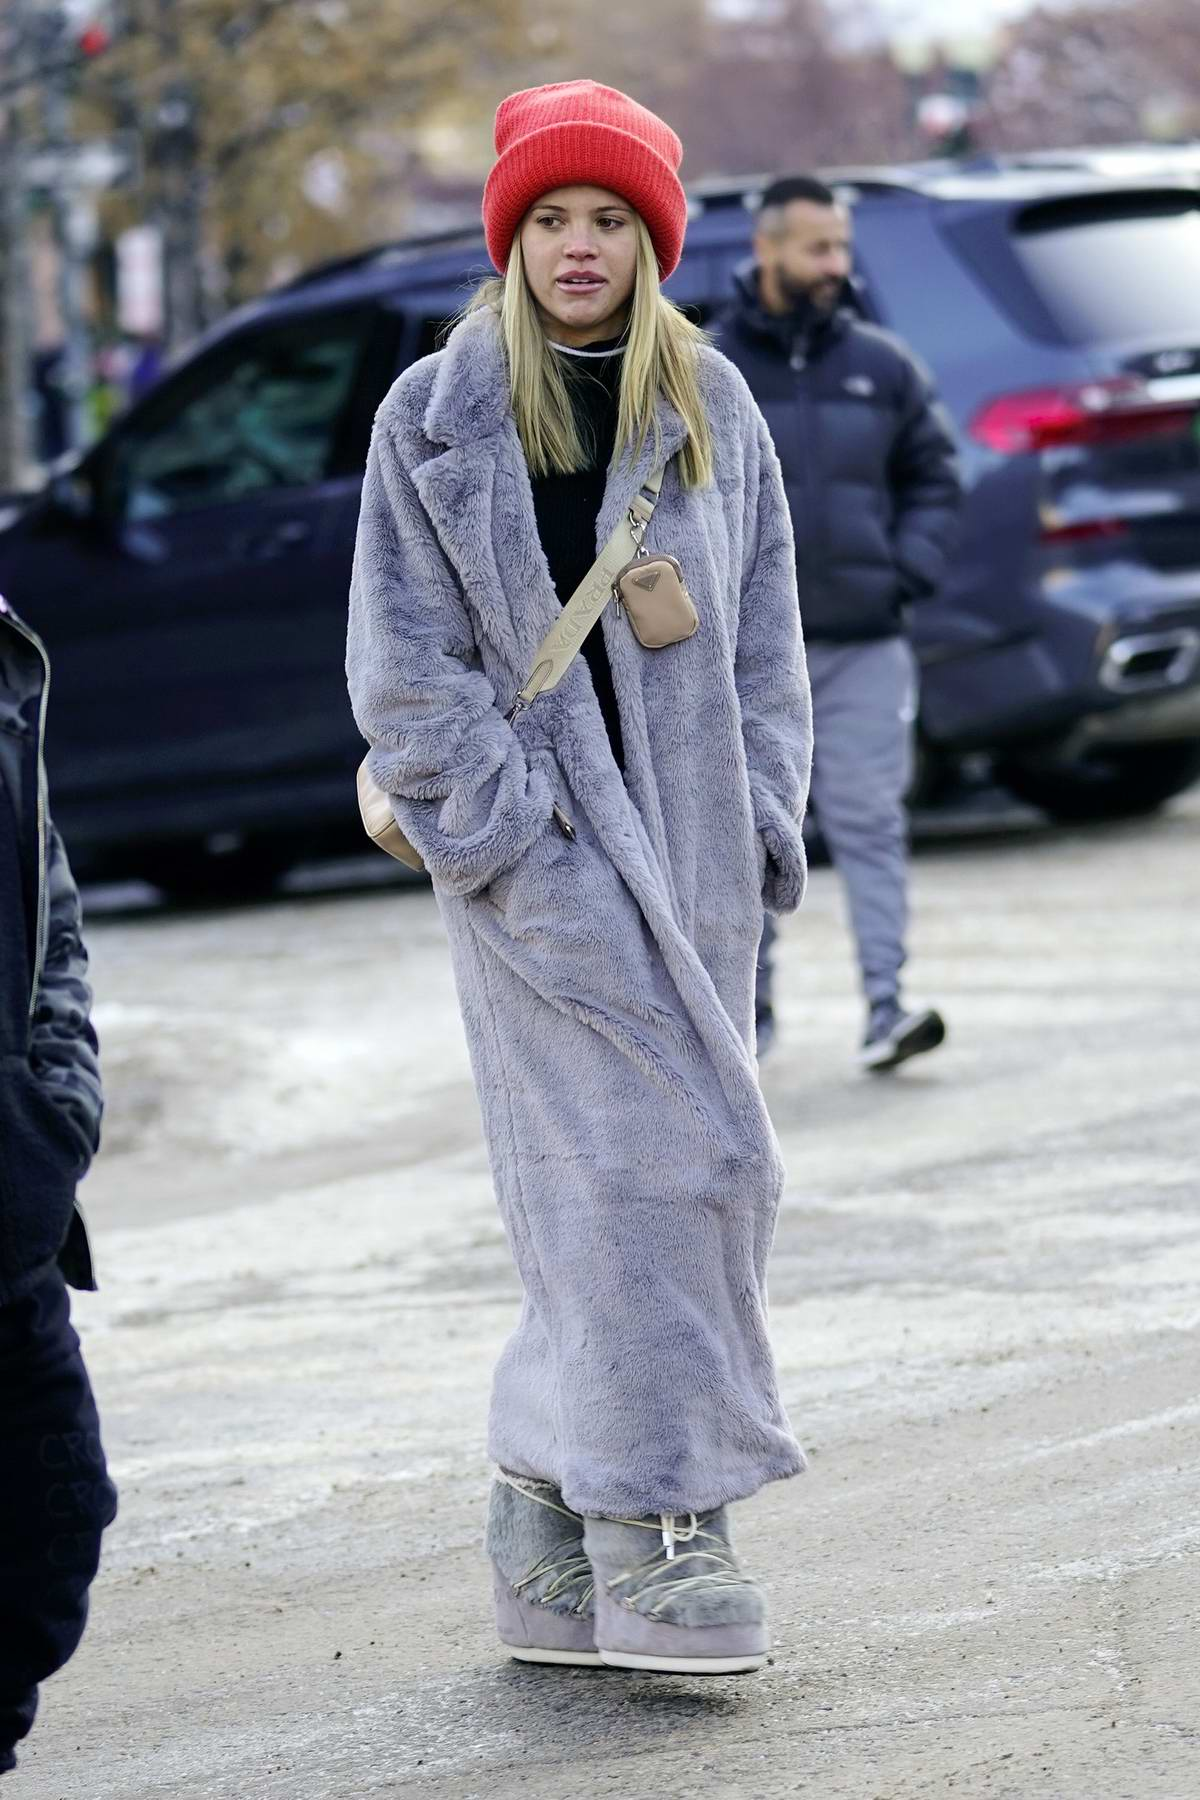 Sofia Richie bundles up as she steps out with Scott Disick and his kids in Aspen, Colorado